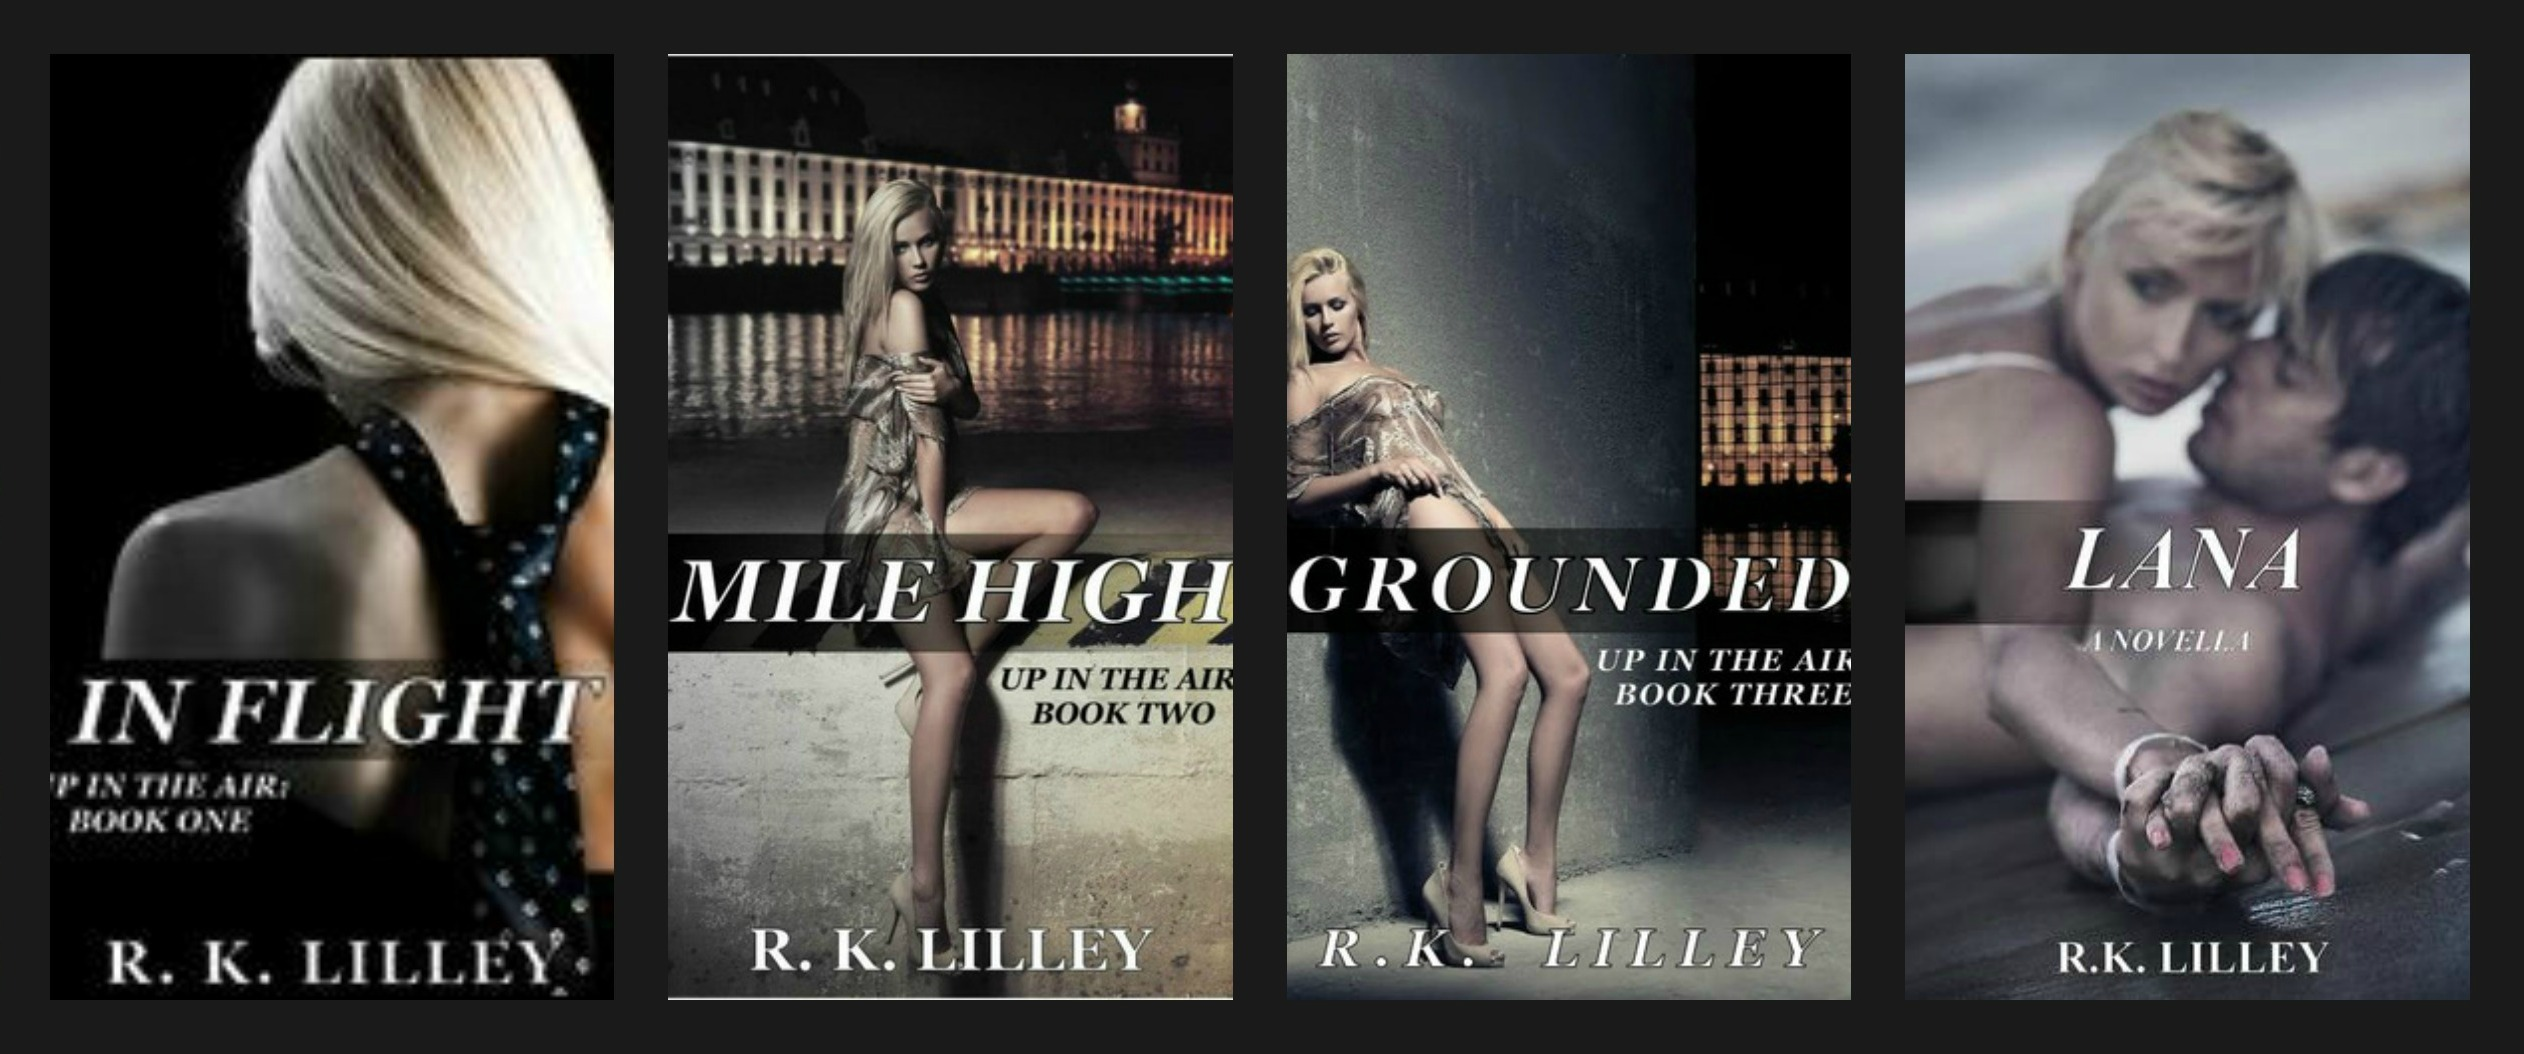 Libros Eróticos Pdf Mr Beautiful By R K Lilley Cover Reveal Excerpt